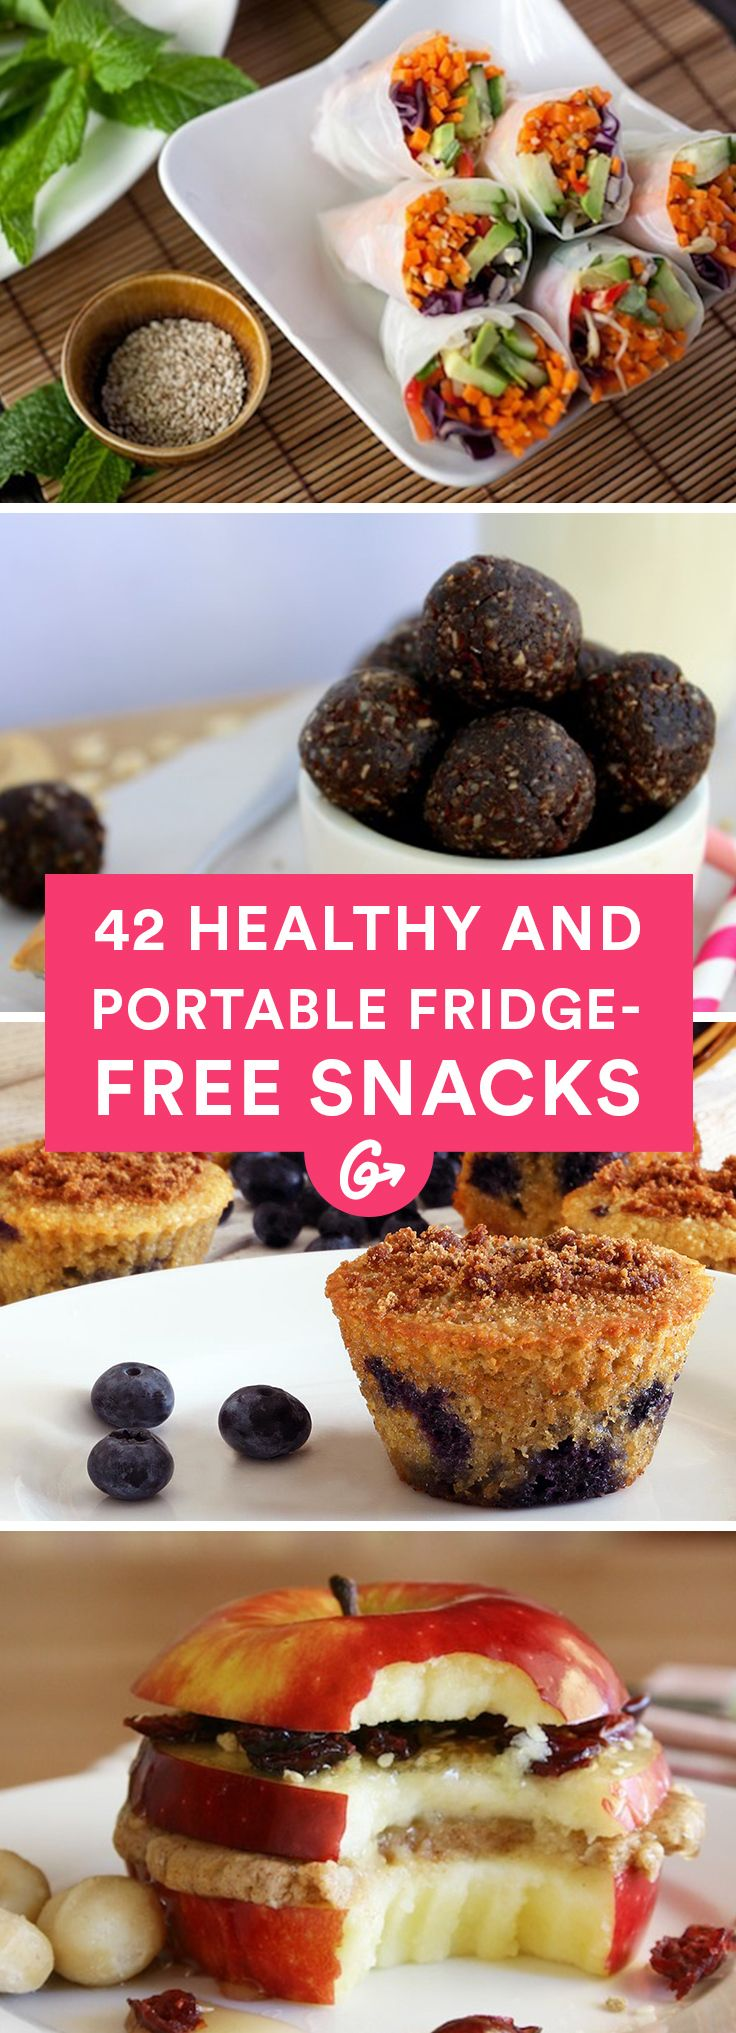 With a little preparation and the right ingredients, snack time can be healthy, tasty, and hassle-free. #healthy #snacks #recipes http://greatist.com/health/healthy-portable-fridge-free-snacks